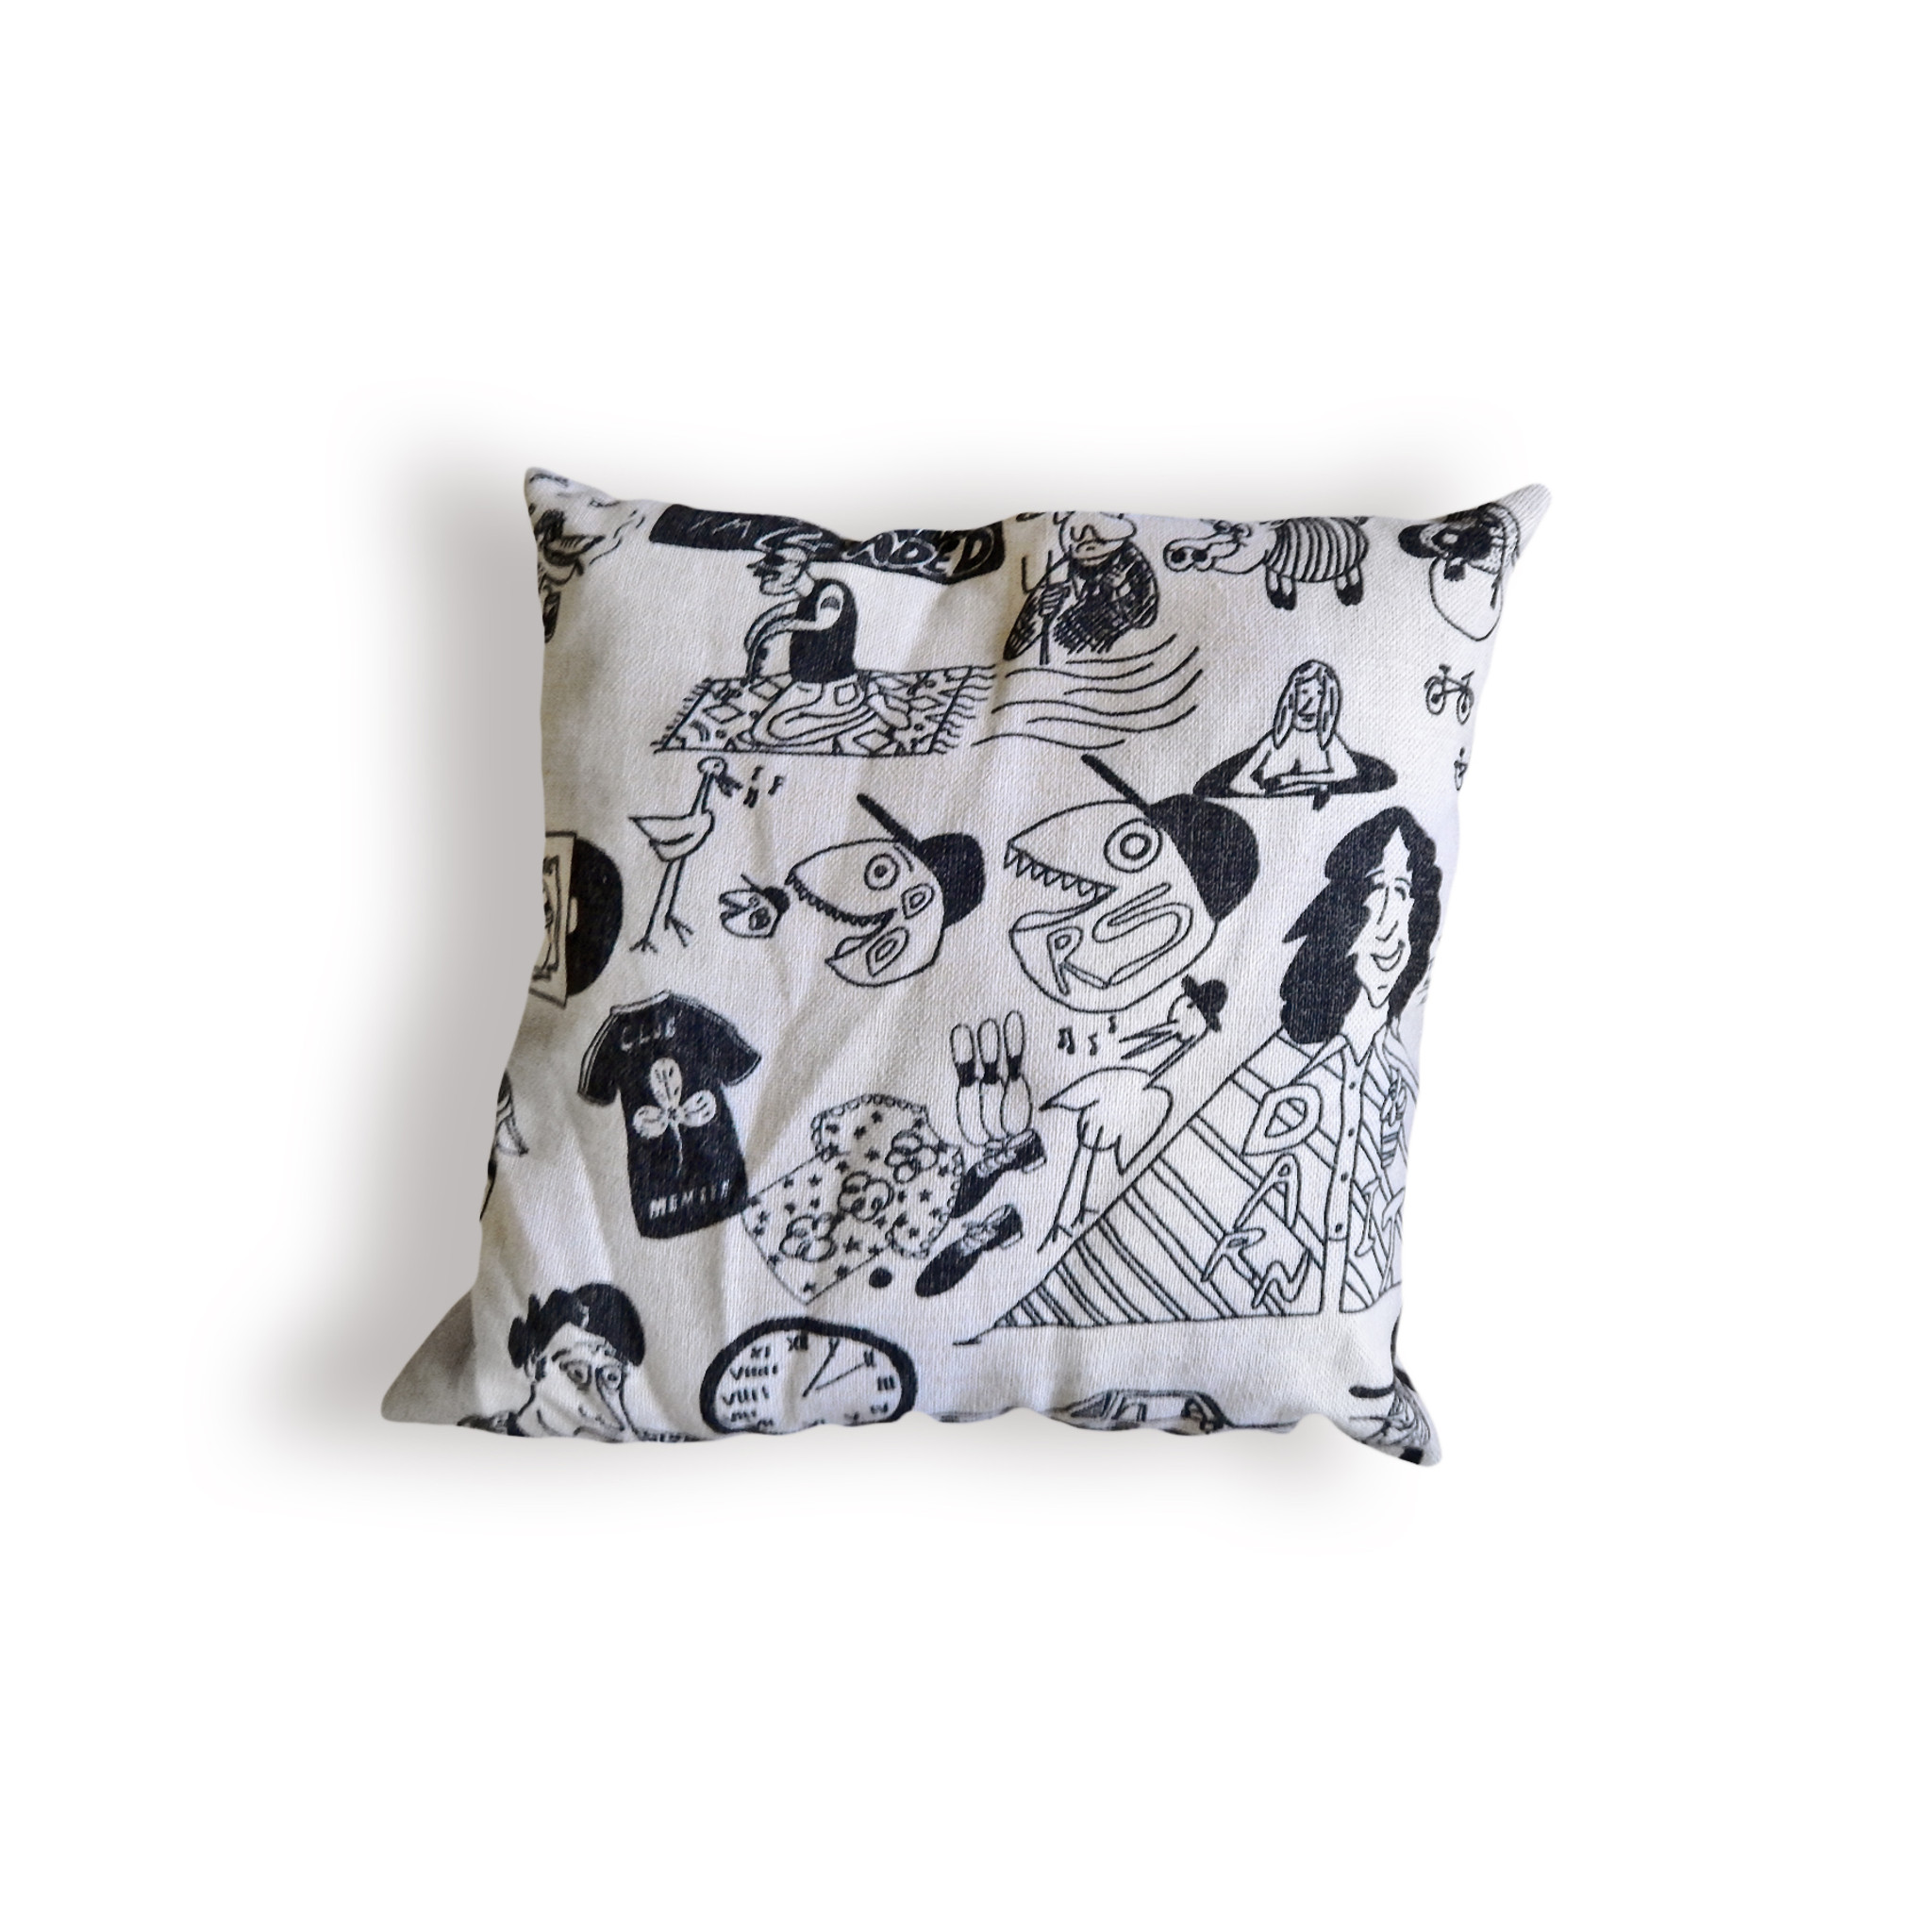 Josh Croteau's Loaded Pillow Cover